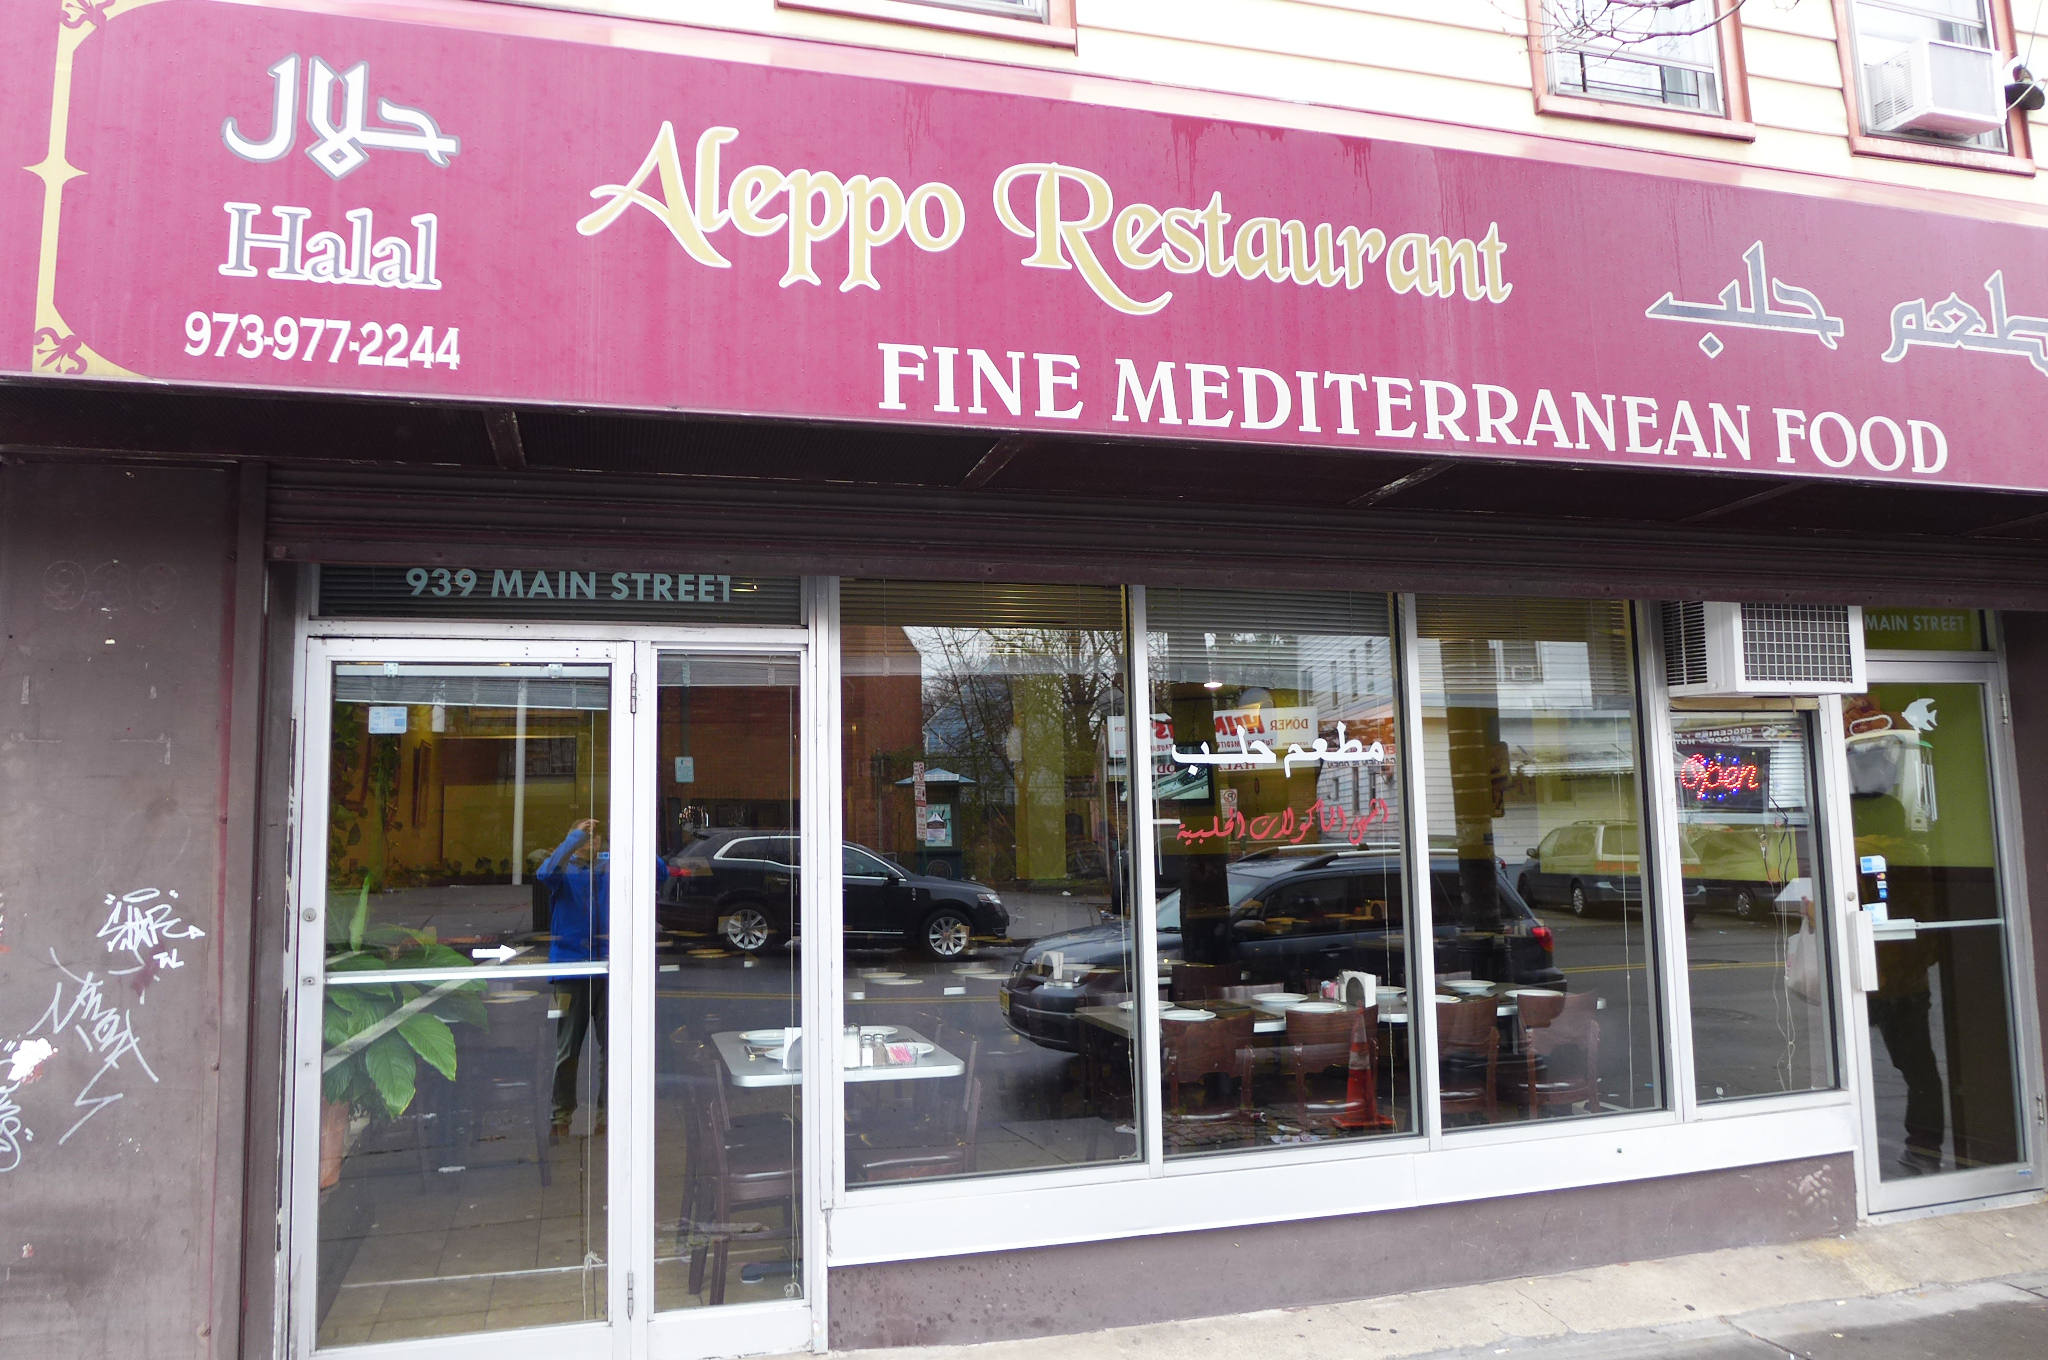 Aleppo Restaurant The Most Elegant Of Paterson S Sit Down Restaurants Specializes In Kebab A Ground Meat Affair Laced With Onions And